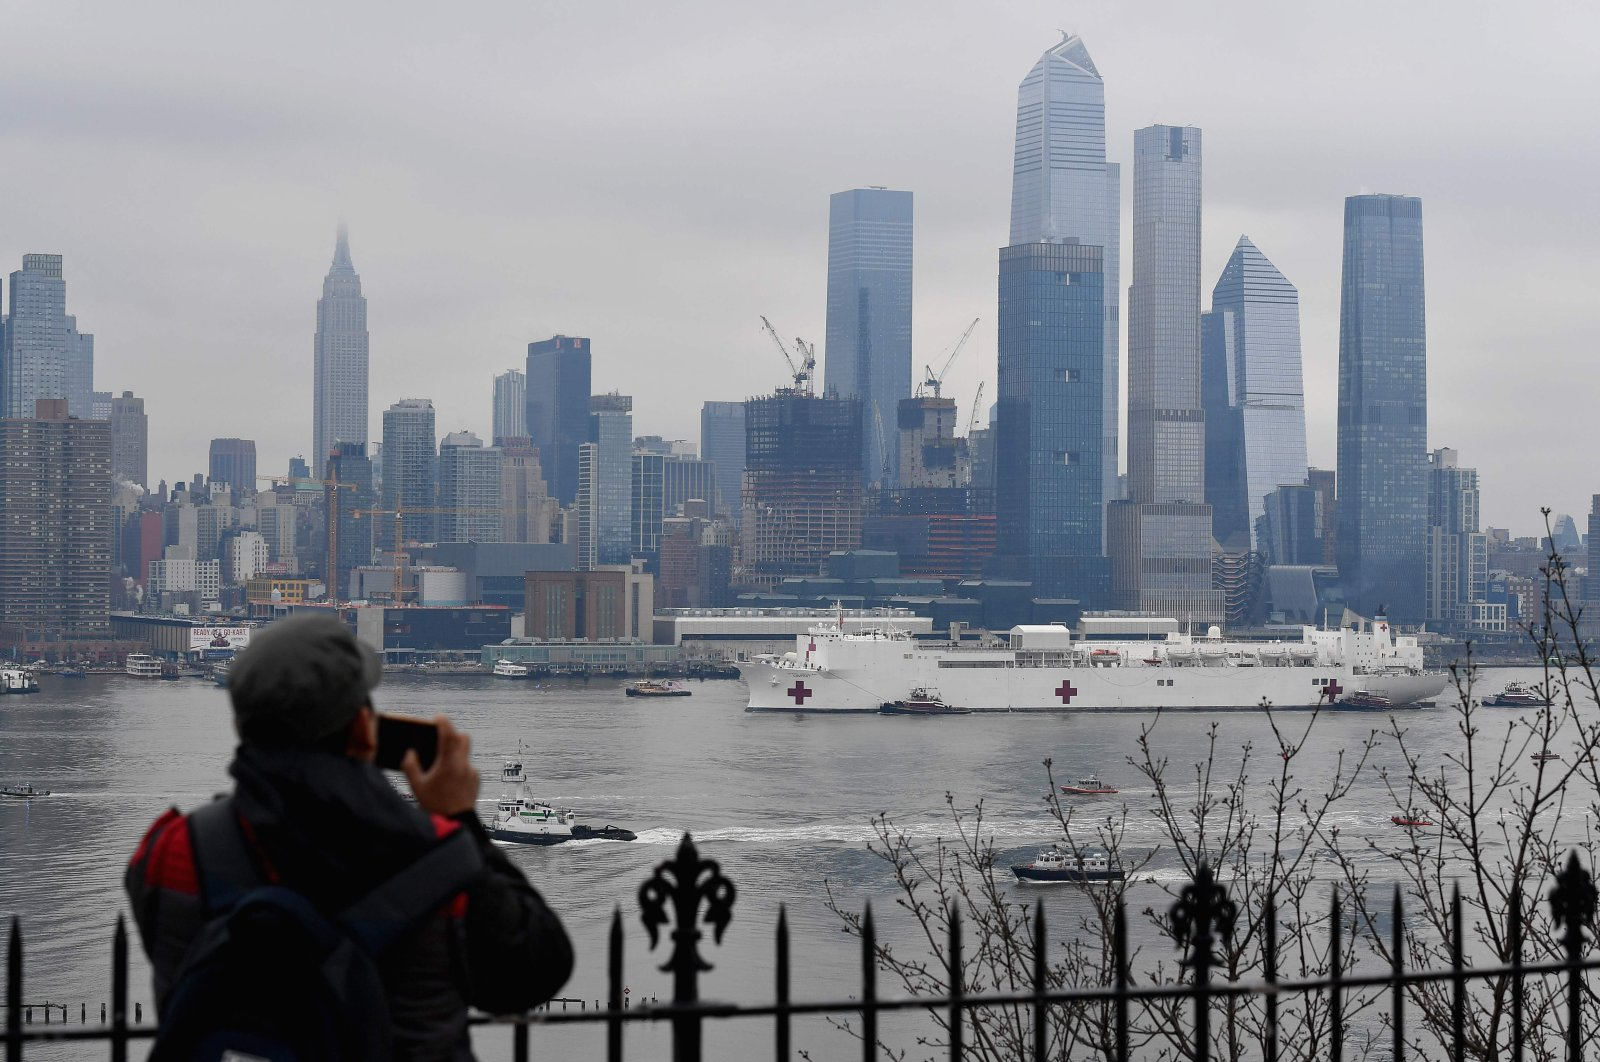 The USNS Comfort medical ship moves up the Hudson River as it arrives on Thursday, March 30, 2020, in New York as seen from Weehawken, New Jersey. (AFP Photo)